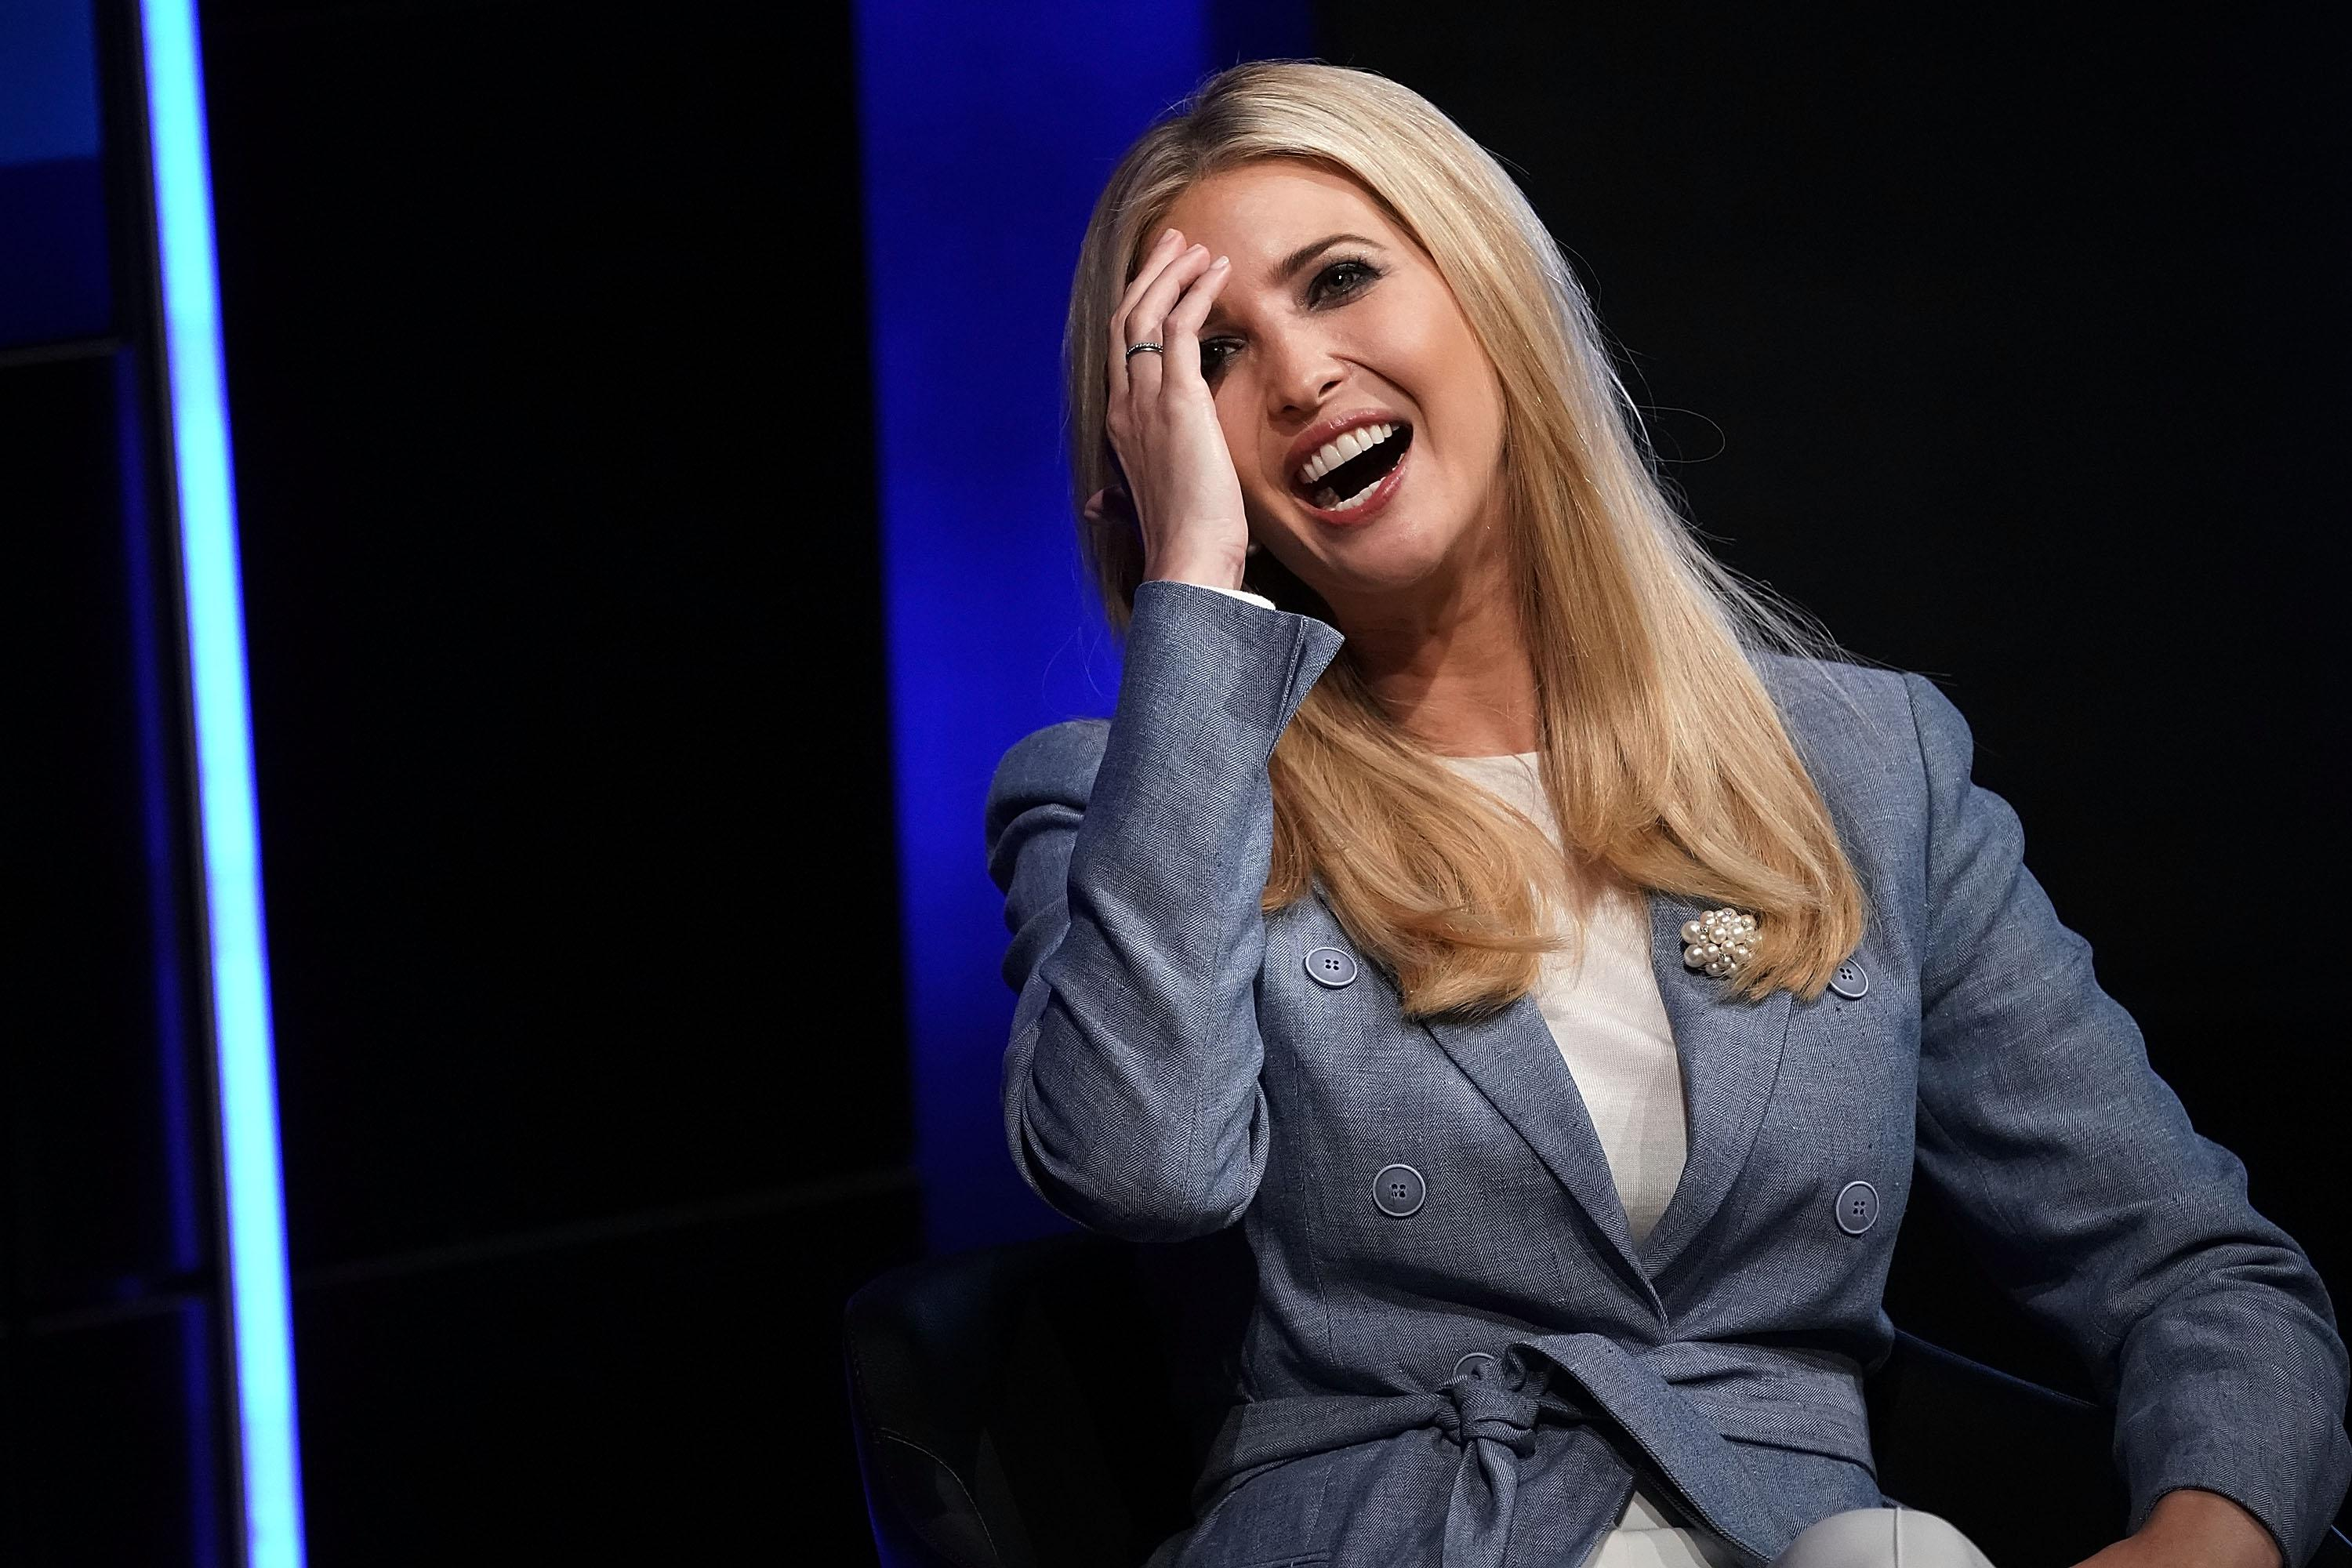 Ivanka Trump laughs as she pushes her hair back out of her face.